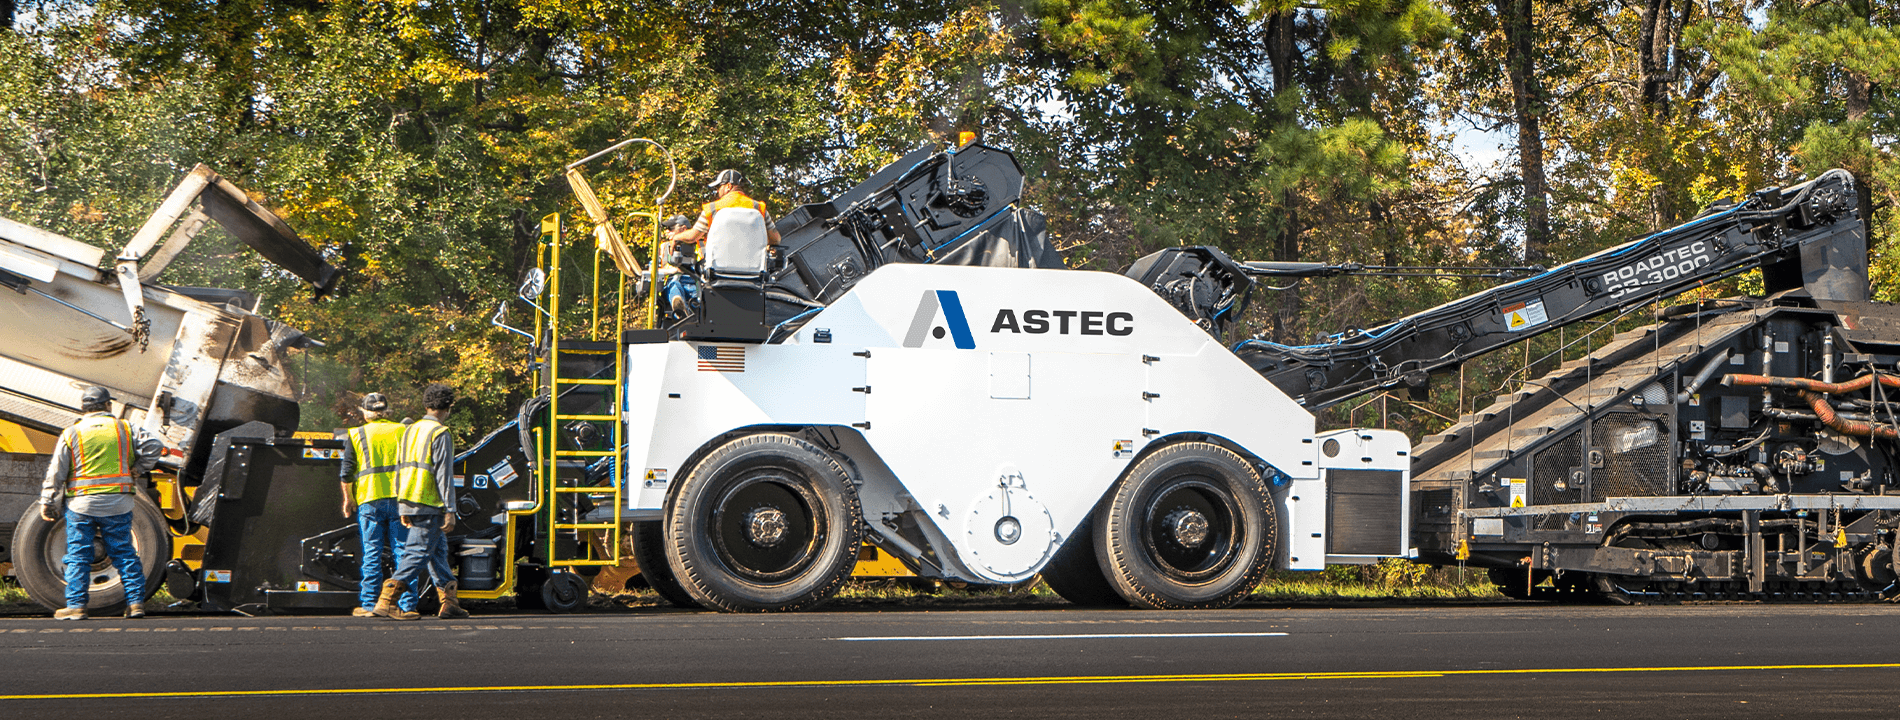 Roadtec SB-3000 Shuttle Buggy Material Transfer Vehicle paving with a Spray Paver